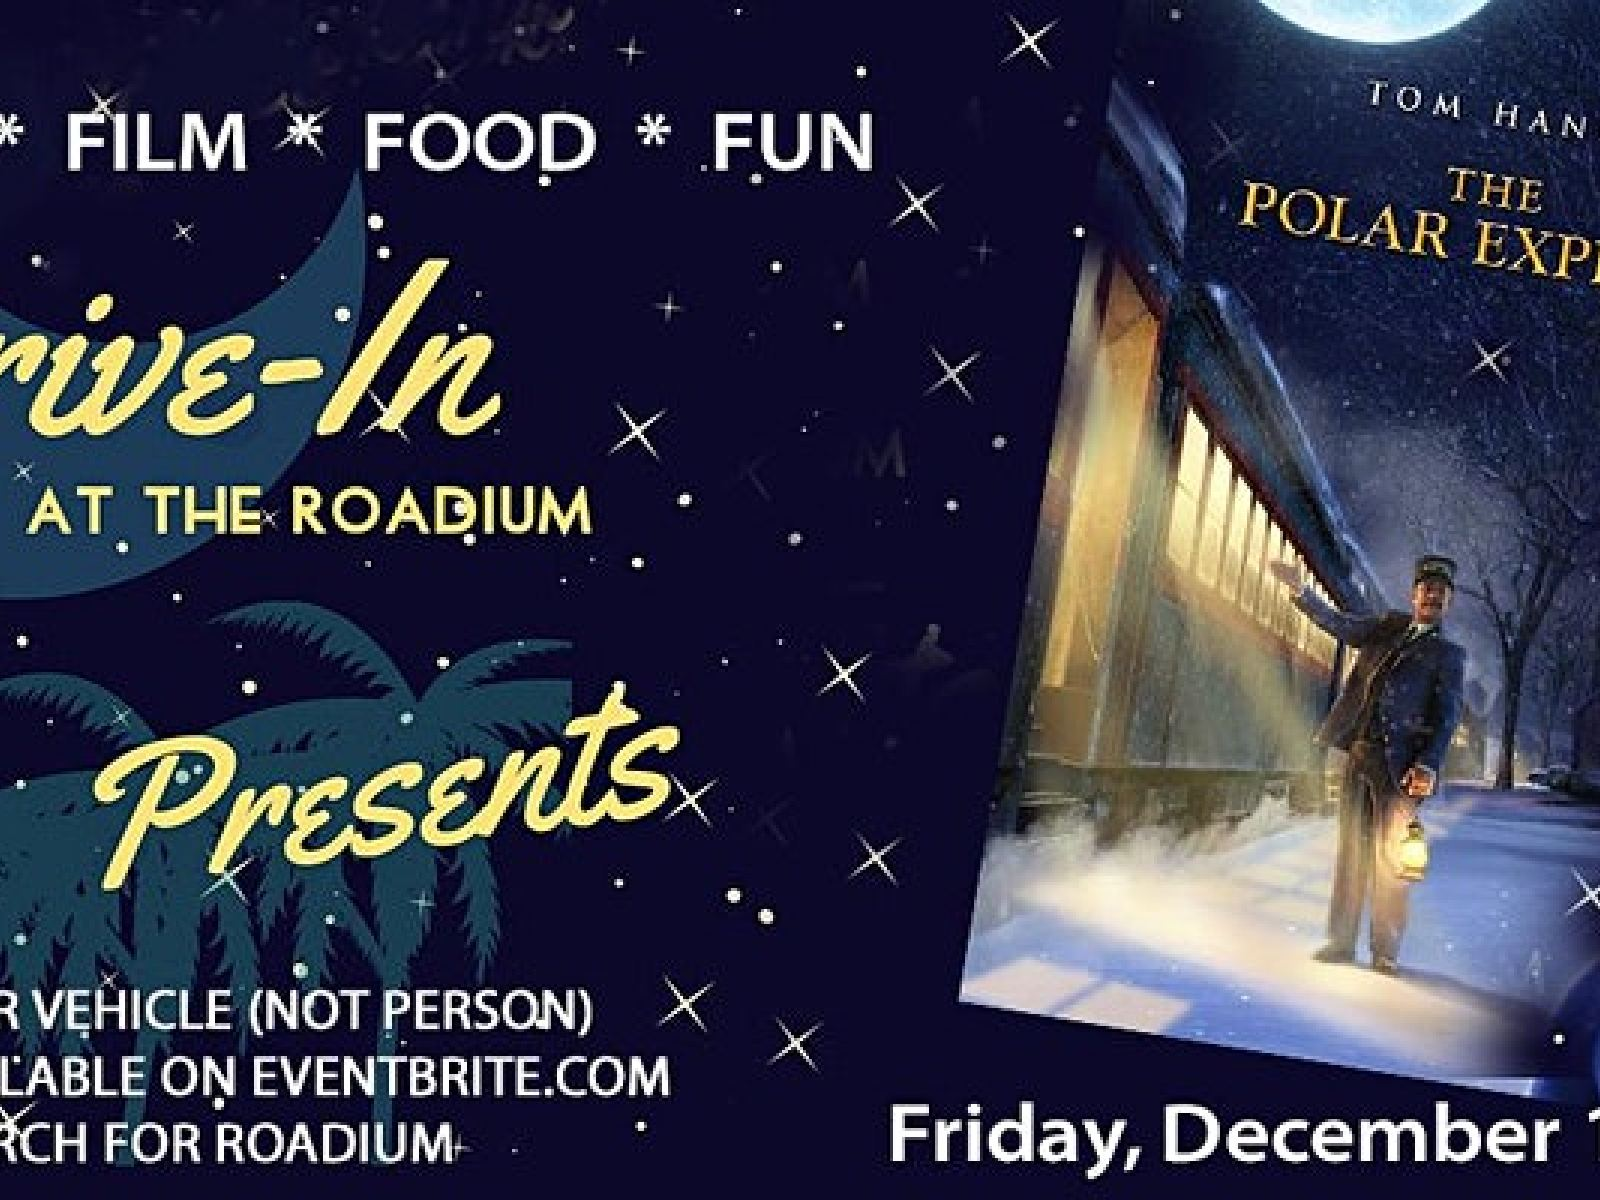 Main image for event titled THE POLAR EXPRESS - Presented by the Roadium Drive-In